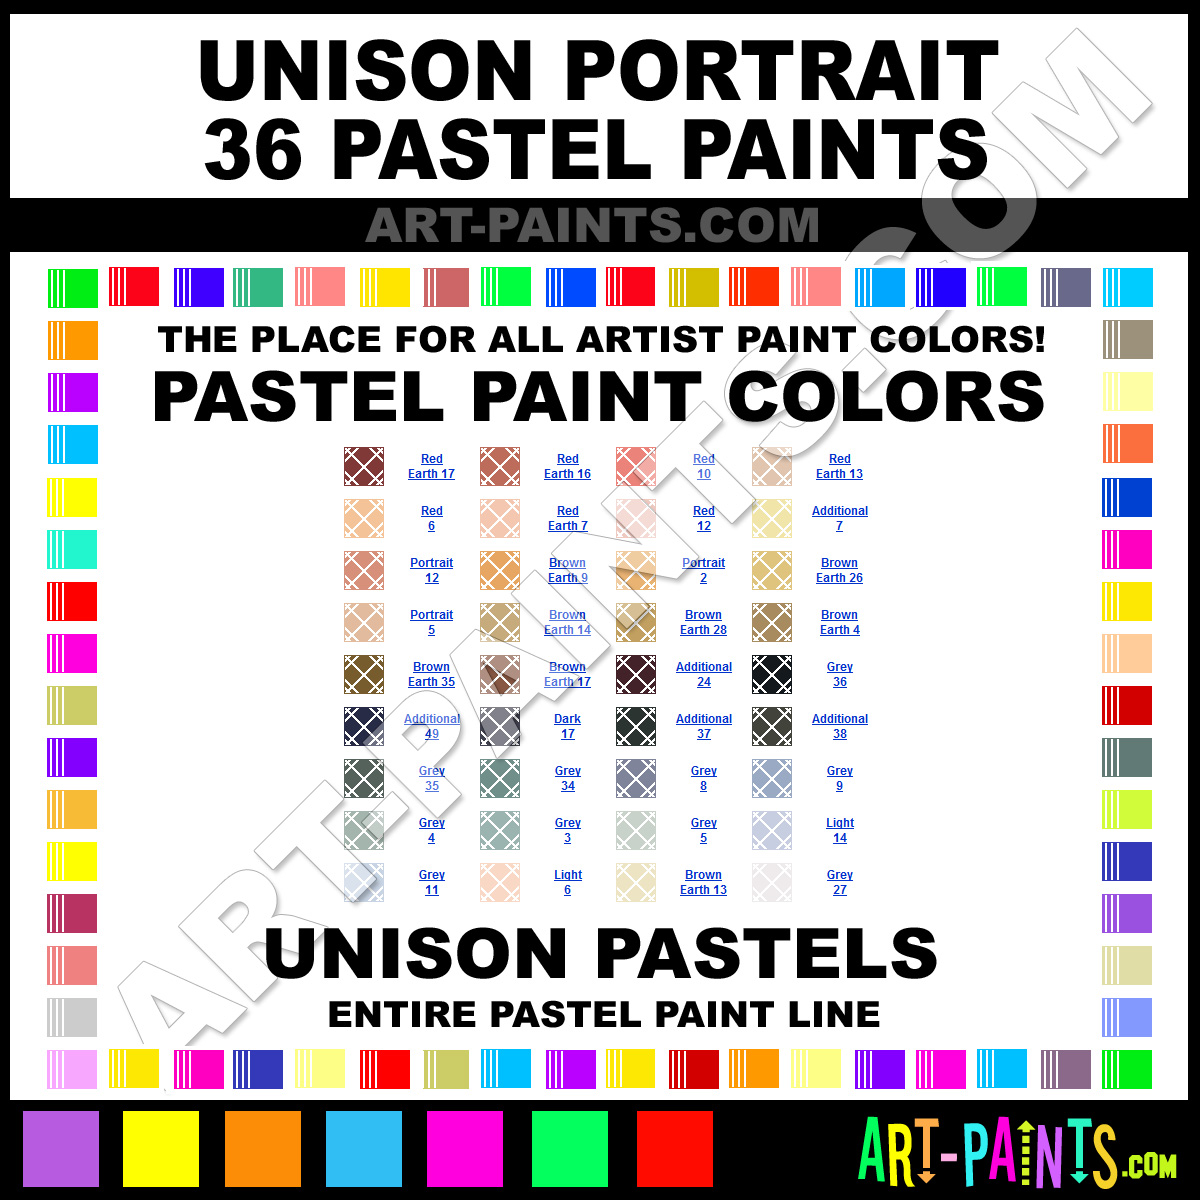 11 Pastel Paint Colors: Unison Portrait Paint Colors, Portrait Color, Portrait